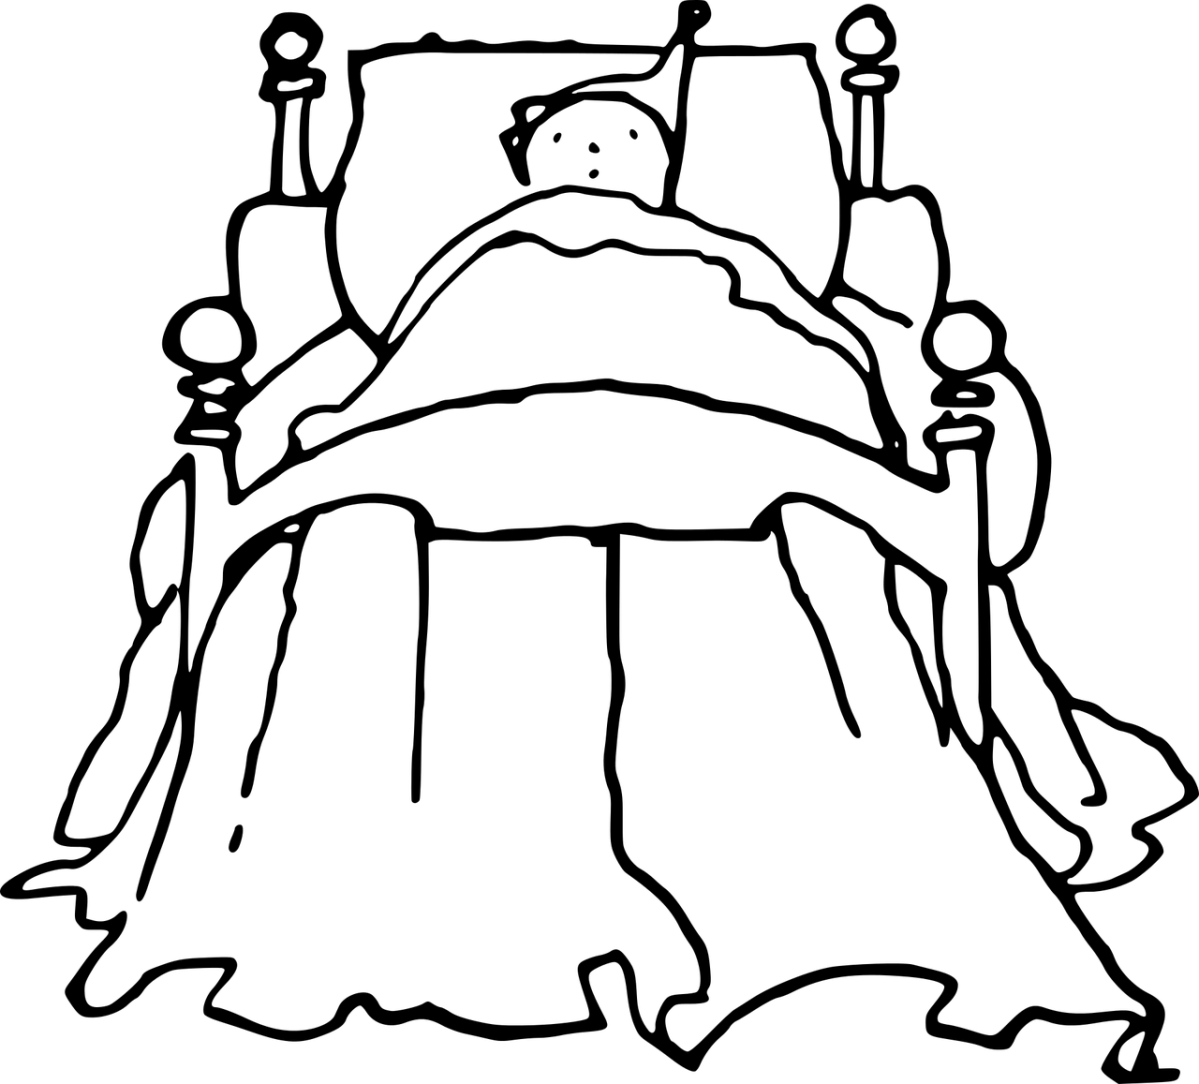 Clipart showing a person, could be man or woman, asleep in bed.